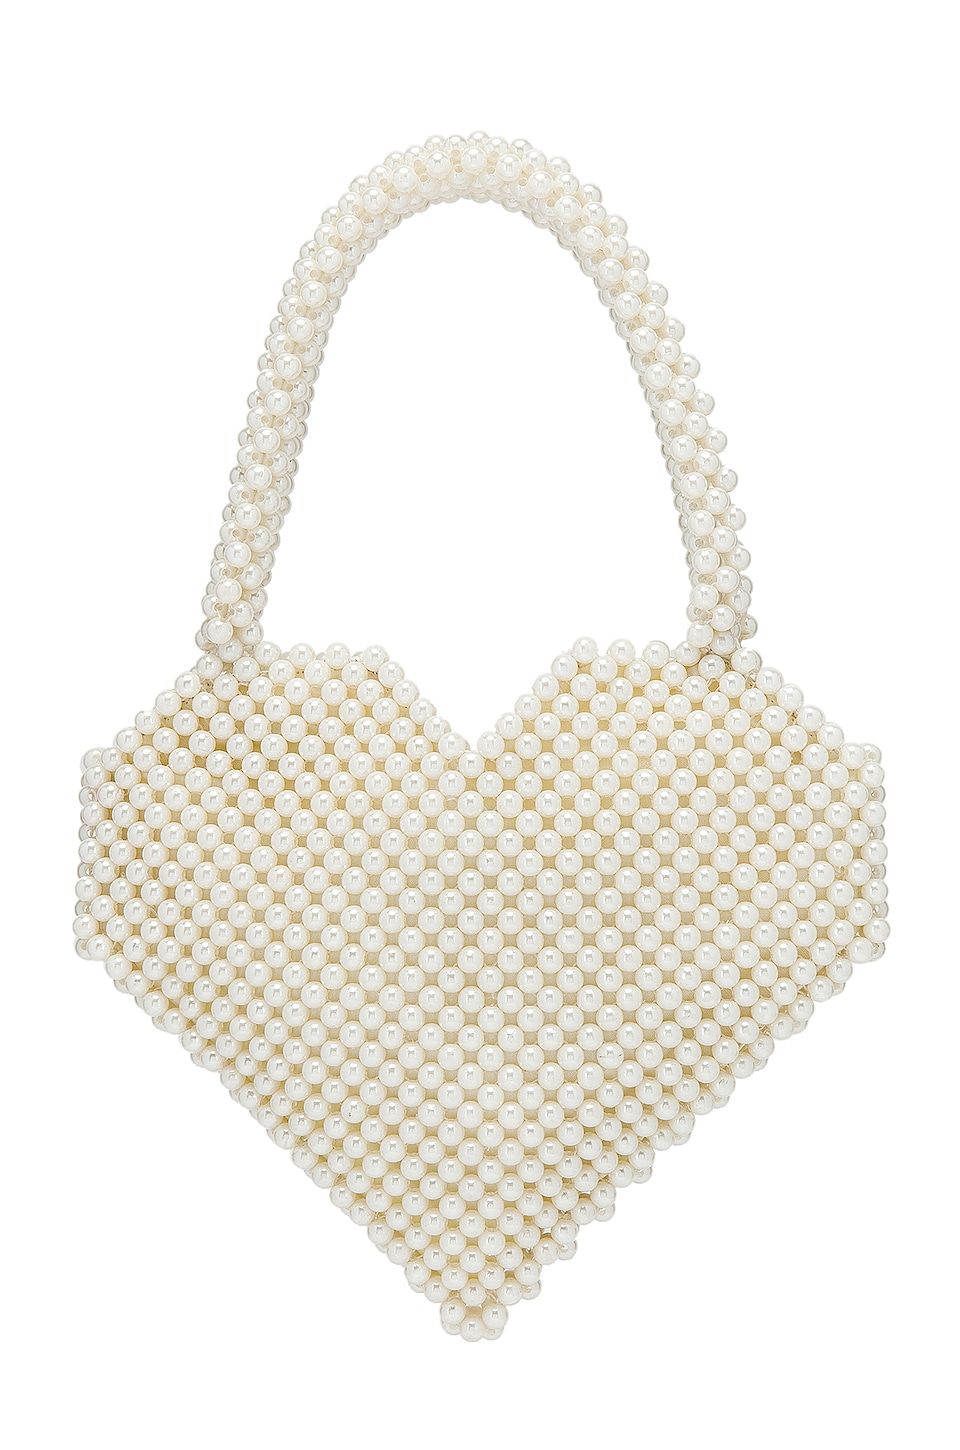 Loeffler Randall Maria Beaded Heart Tote in Pearl